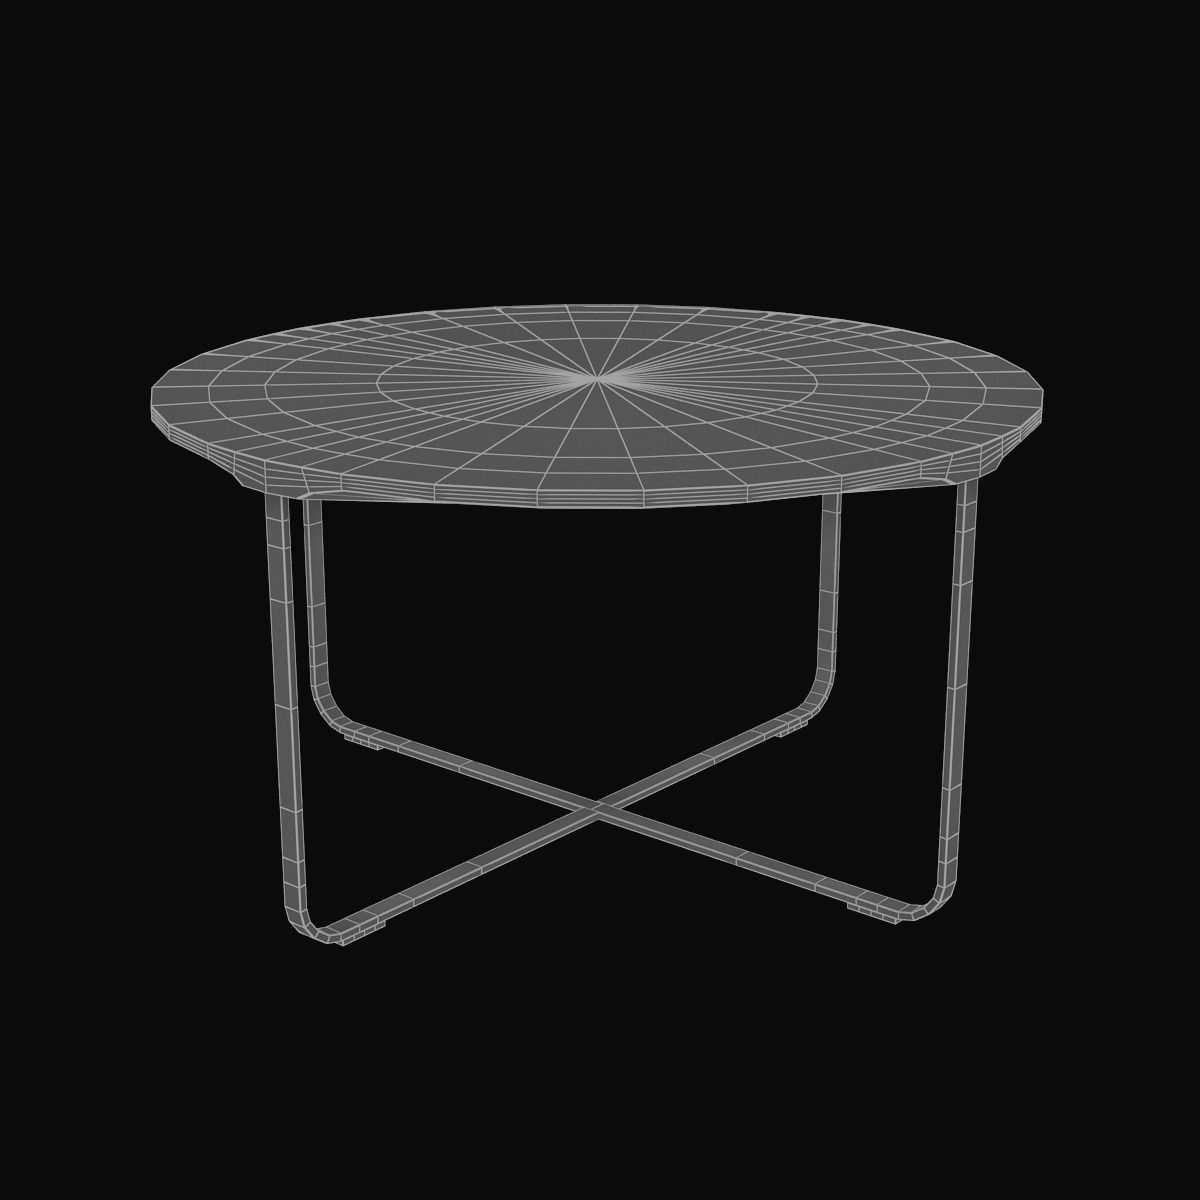 Round silver flint coffee table 3d model max for Table design 3d model